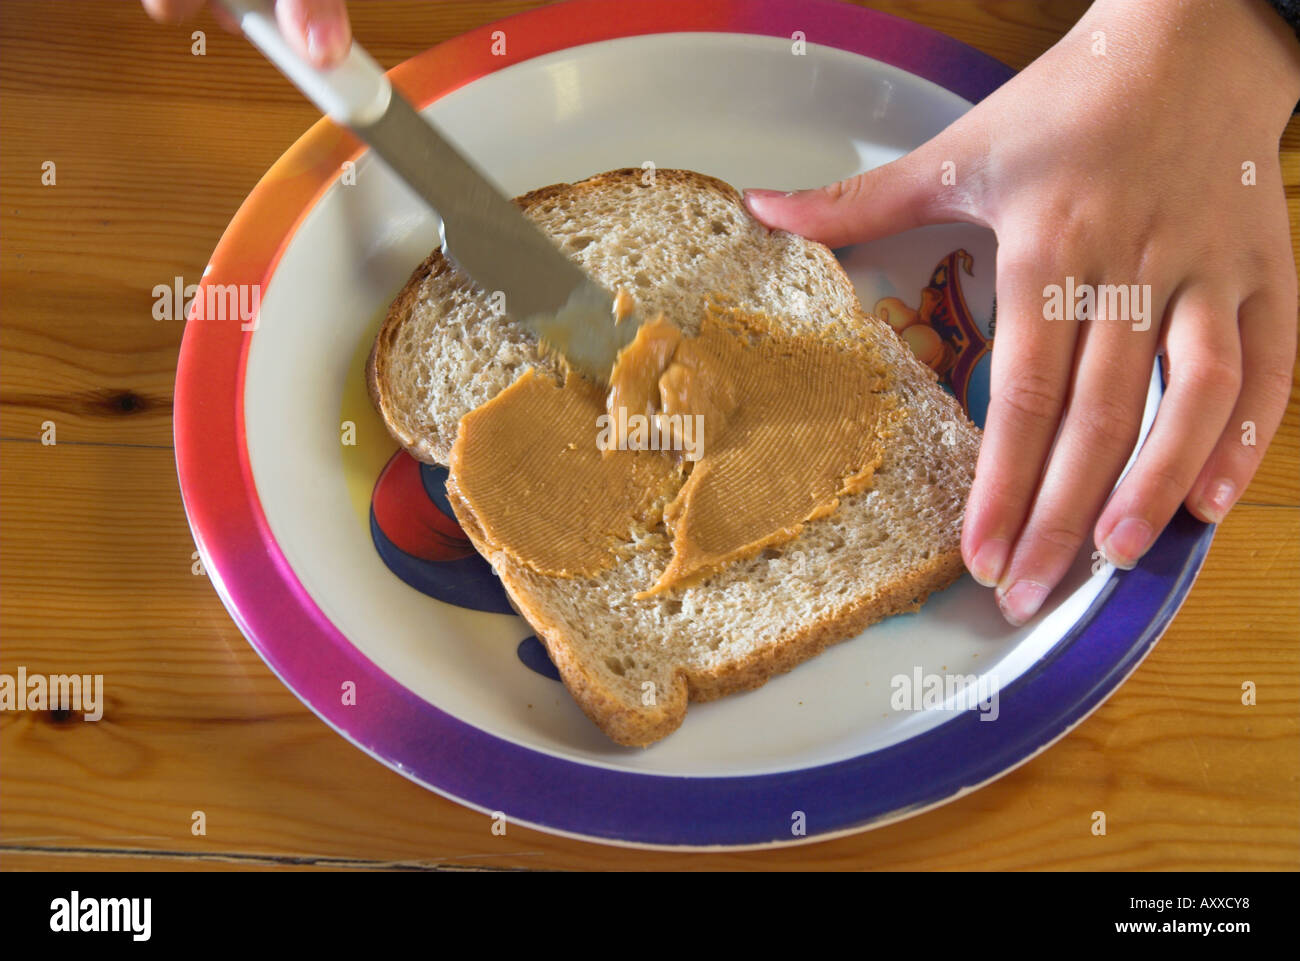 Stock Photo Spreading Peanut Butter On Slice Of Bread 9675703 on Food To Sell